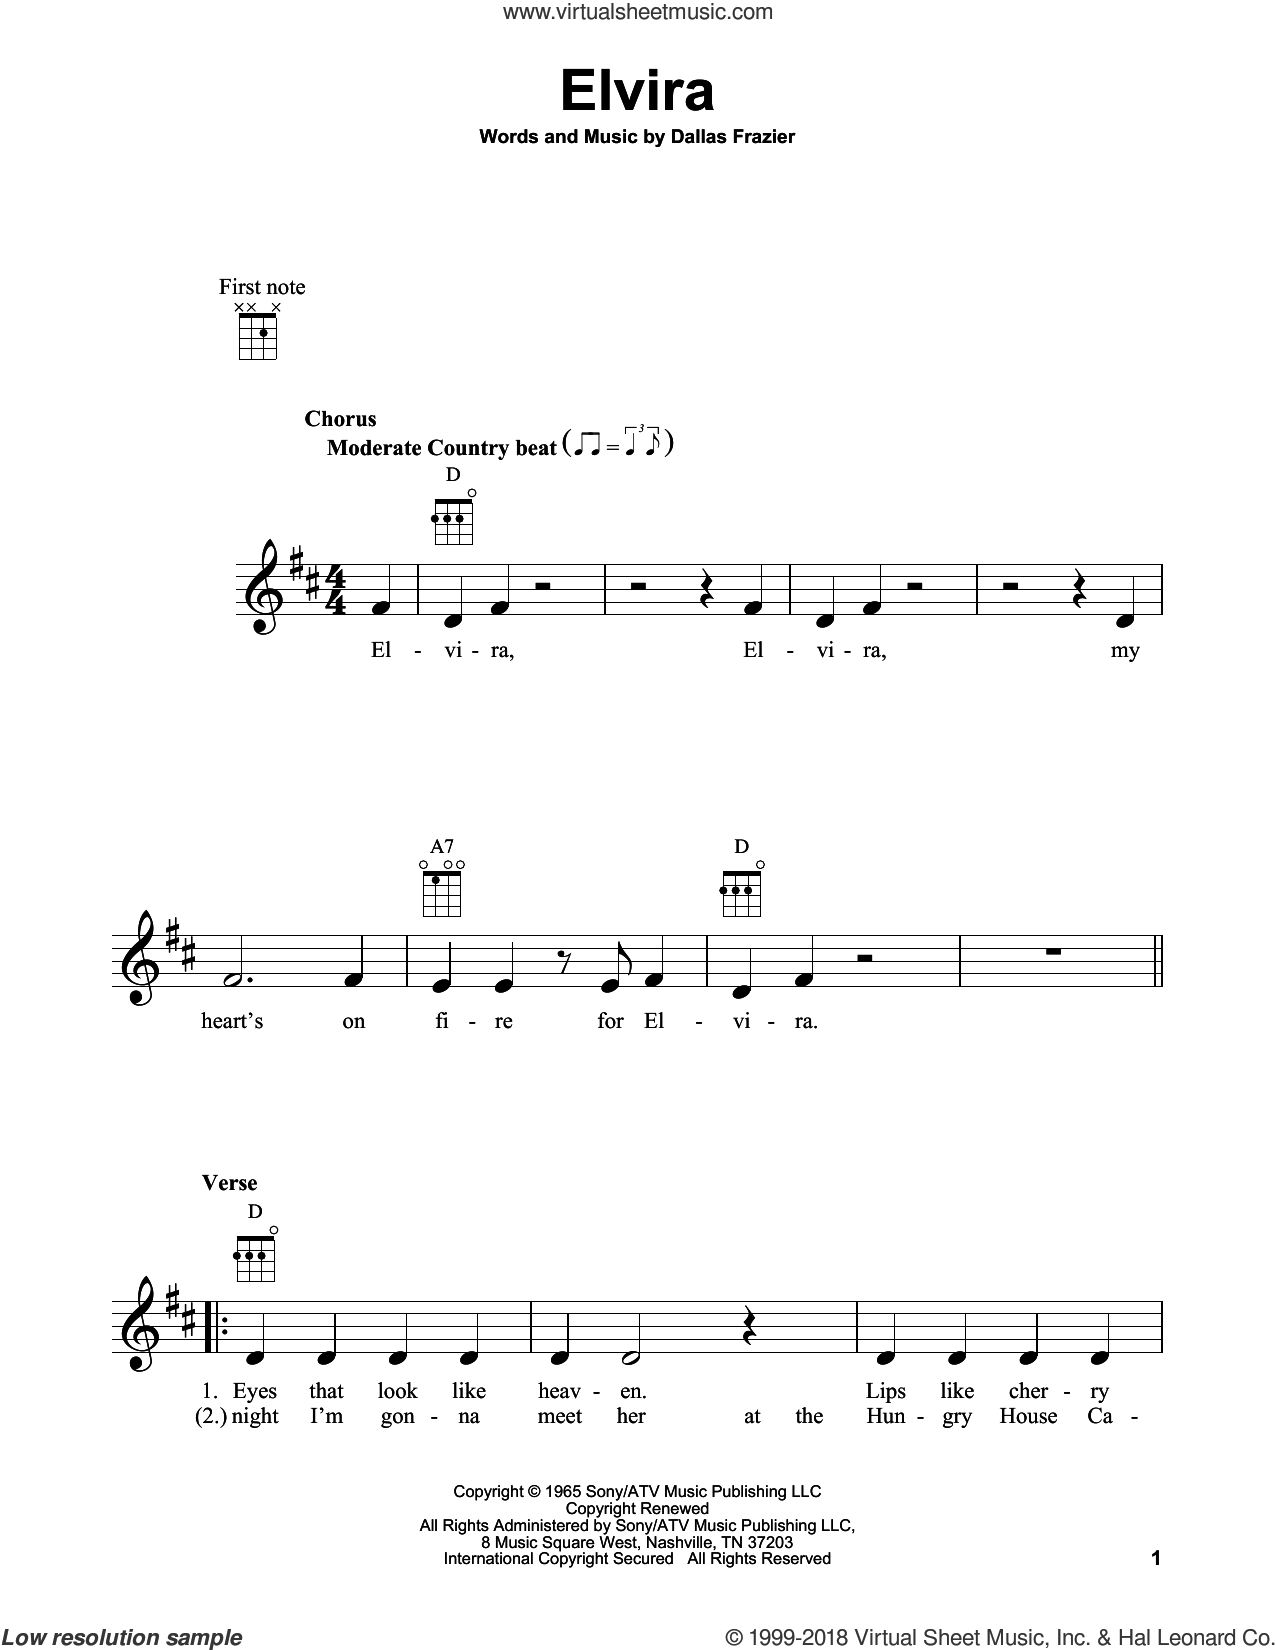 Elvira sheet music for ukulele by Dallas Frazier and Oak Ridge Boys. Score Image Preview.